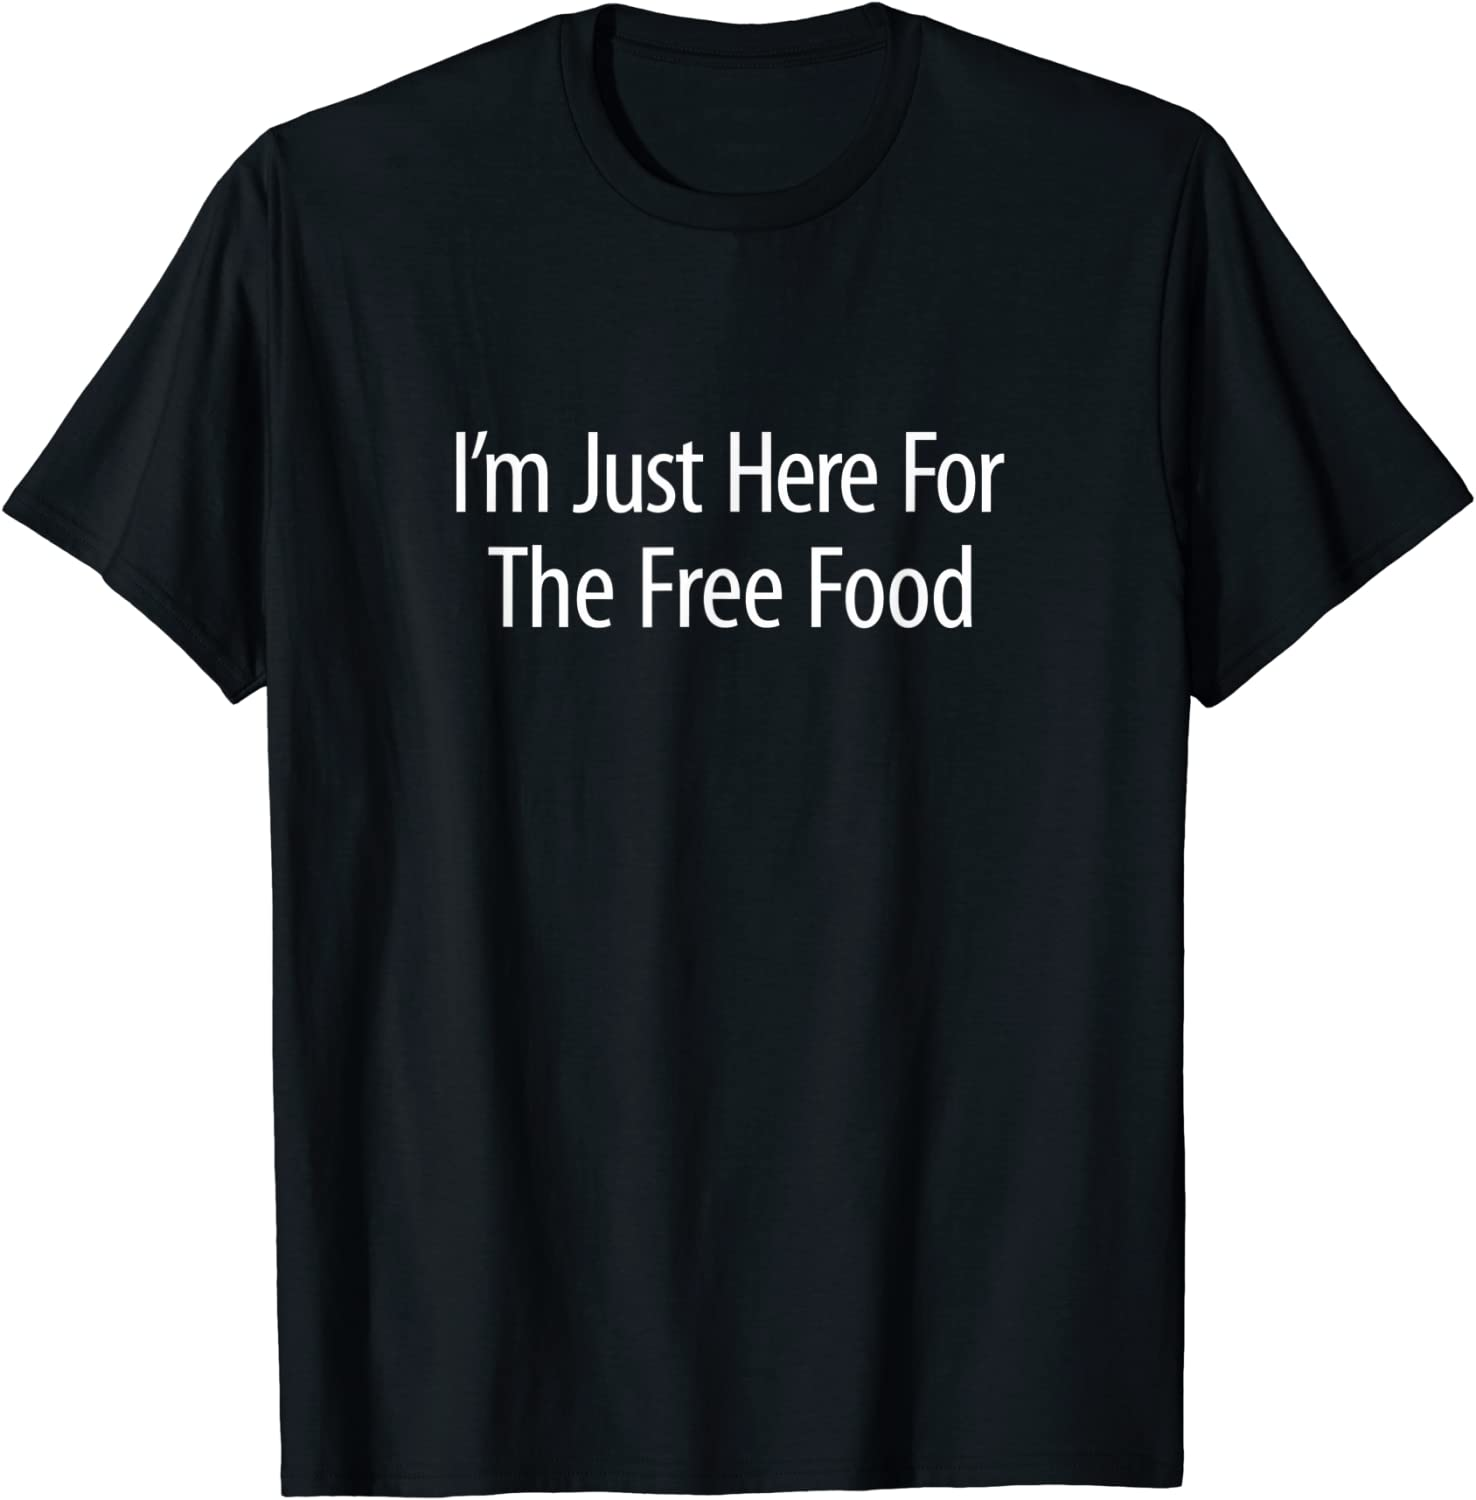 I'm Just Here For The Free Food - T-Shirt